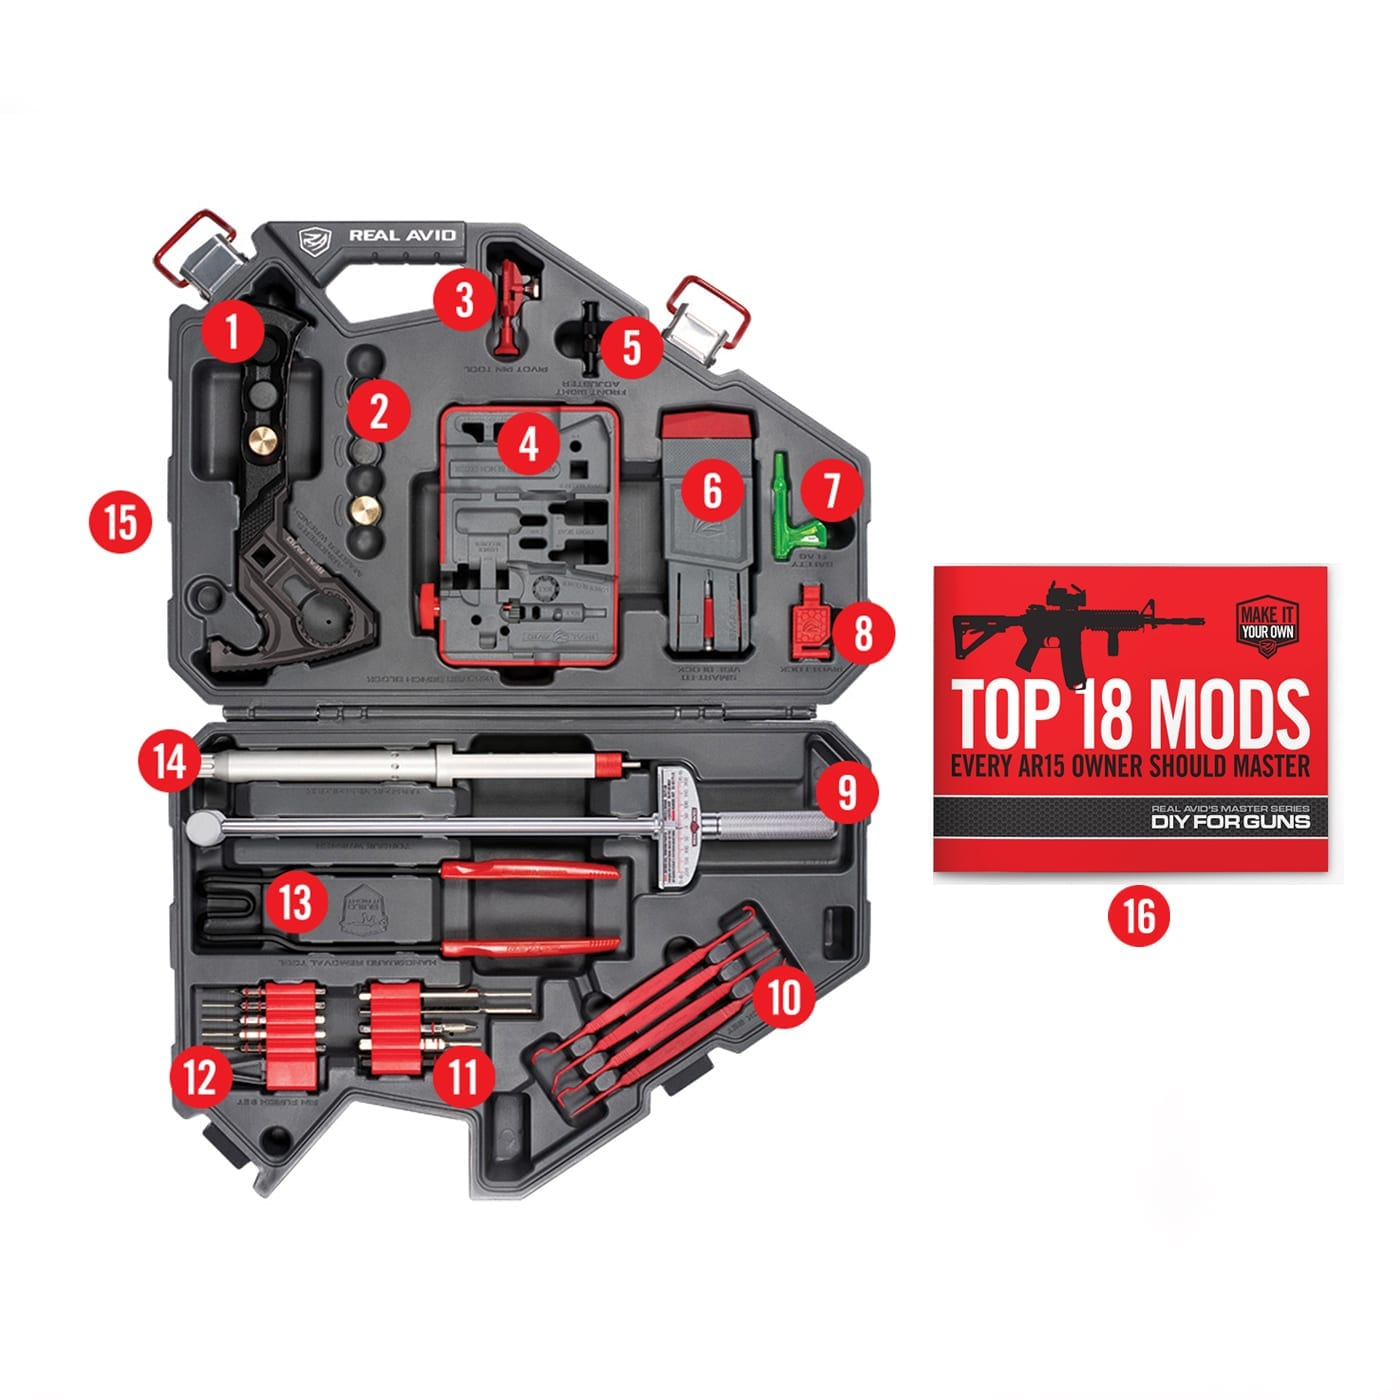 Real Avid Armorer's Master Kit Top Down with Top 18 Mods for an AR15 Book